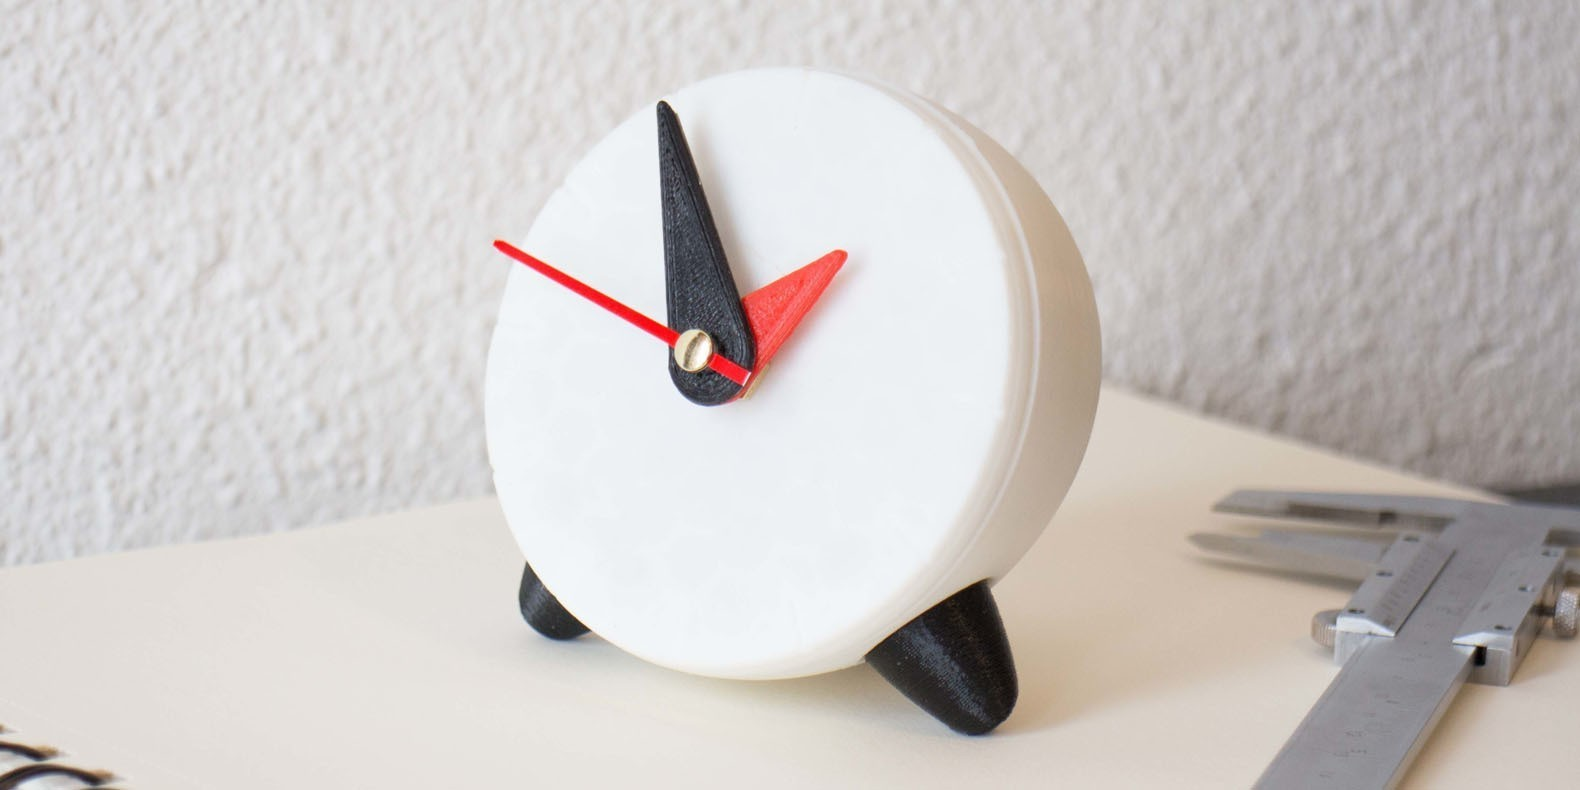 Here is a selection of the best clocks and watches 3D models to make with a 3D printer